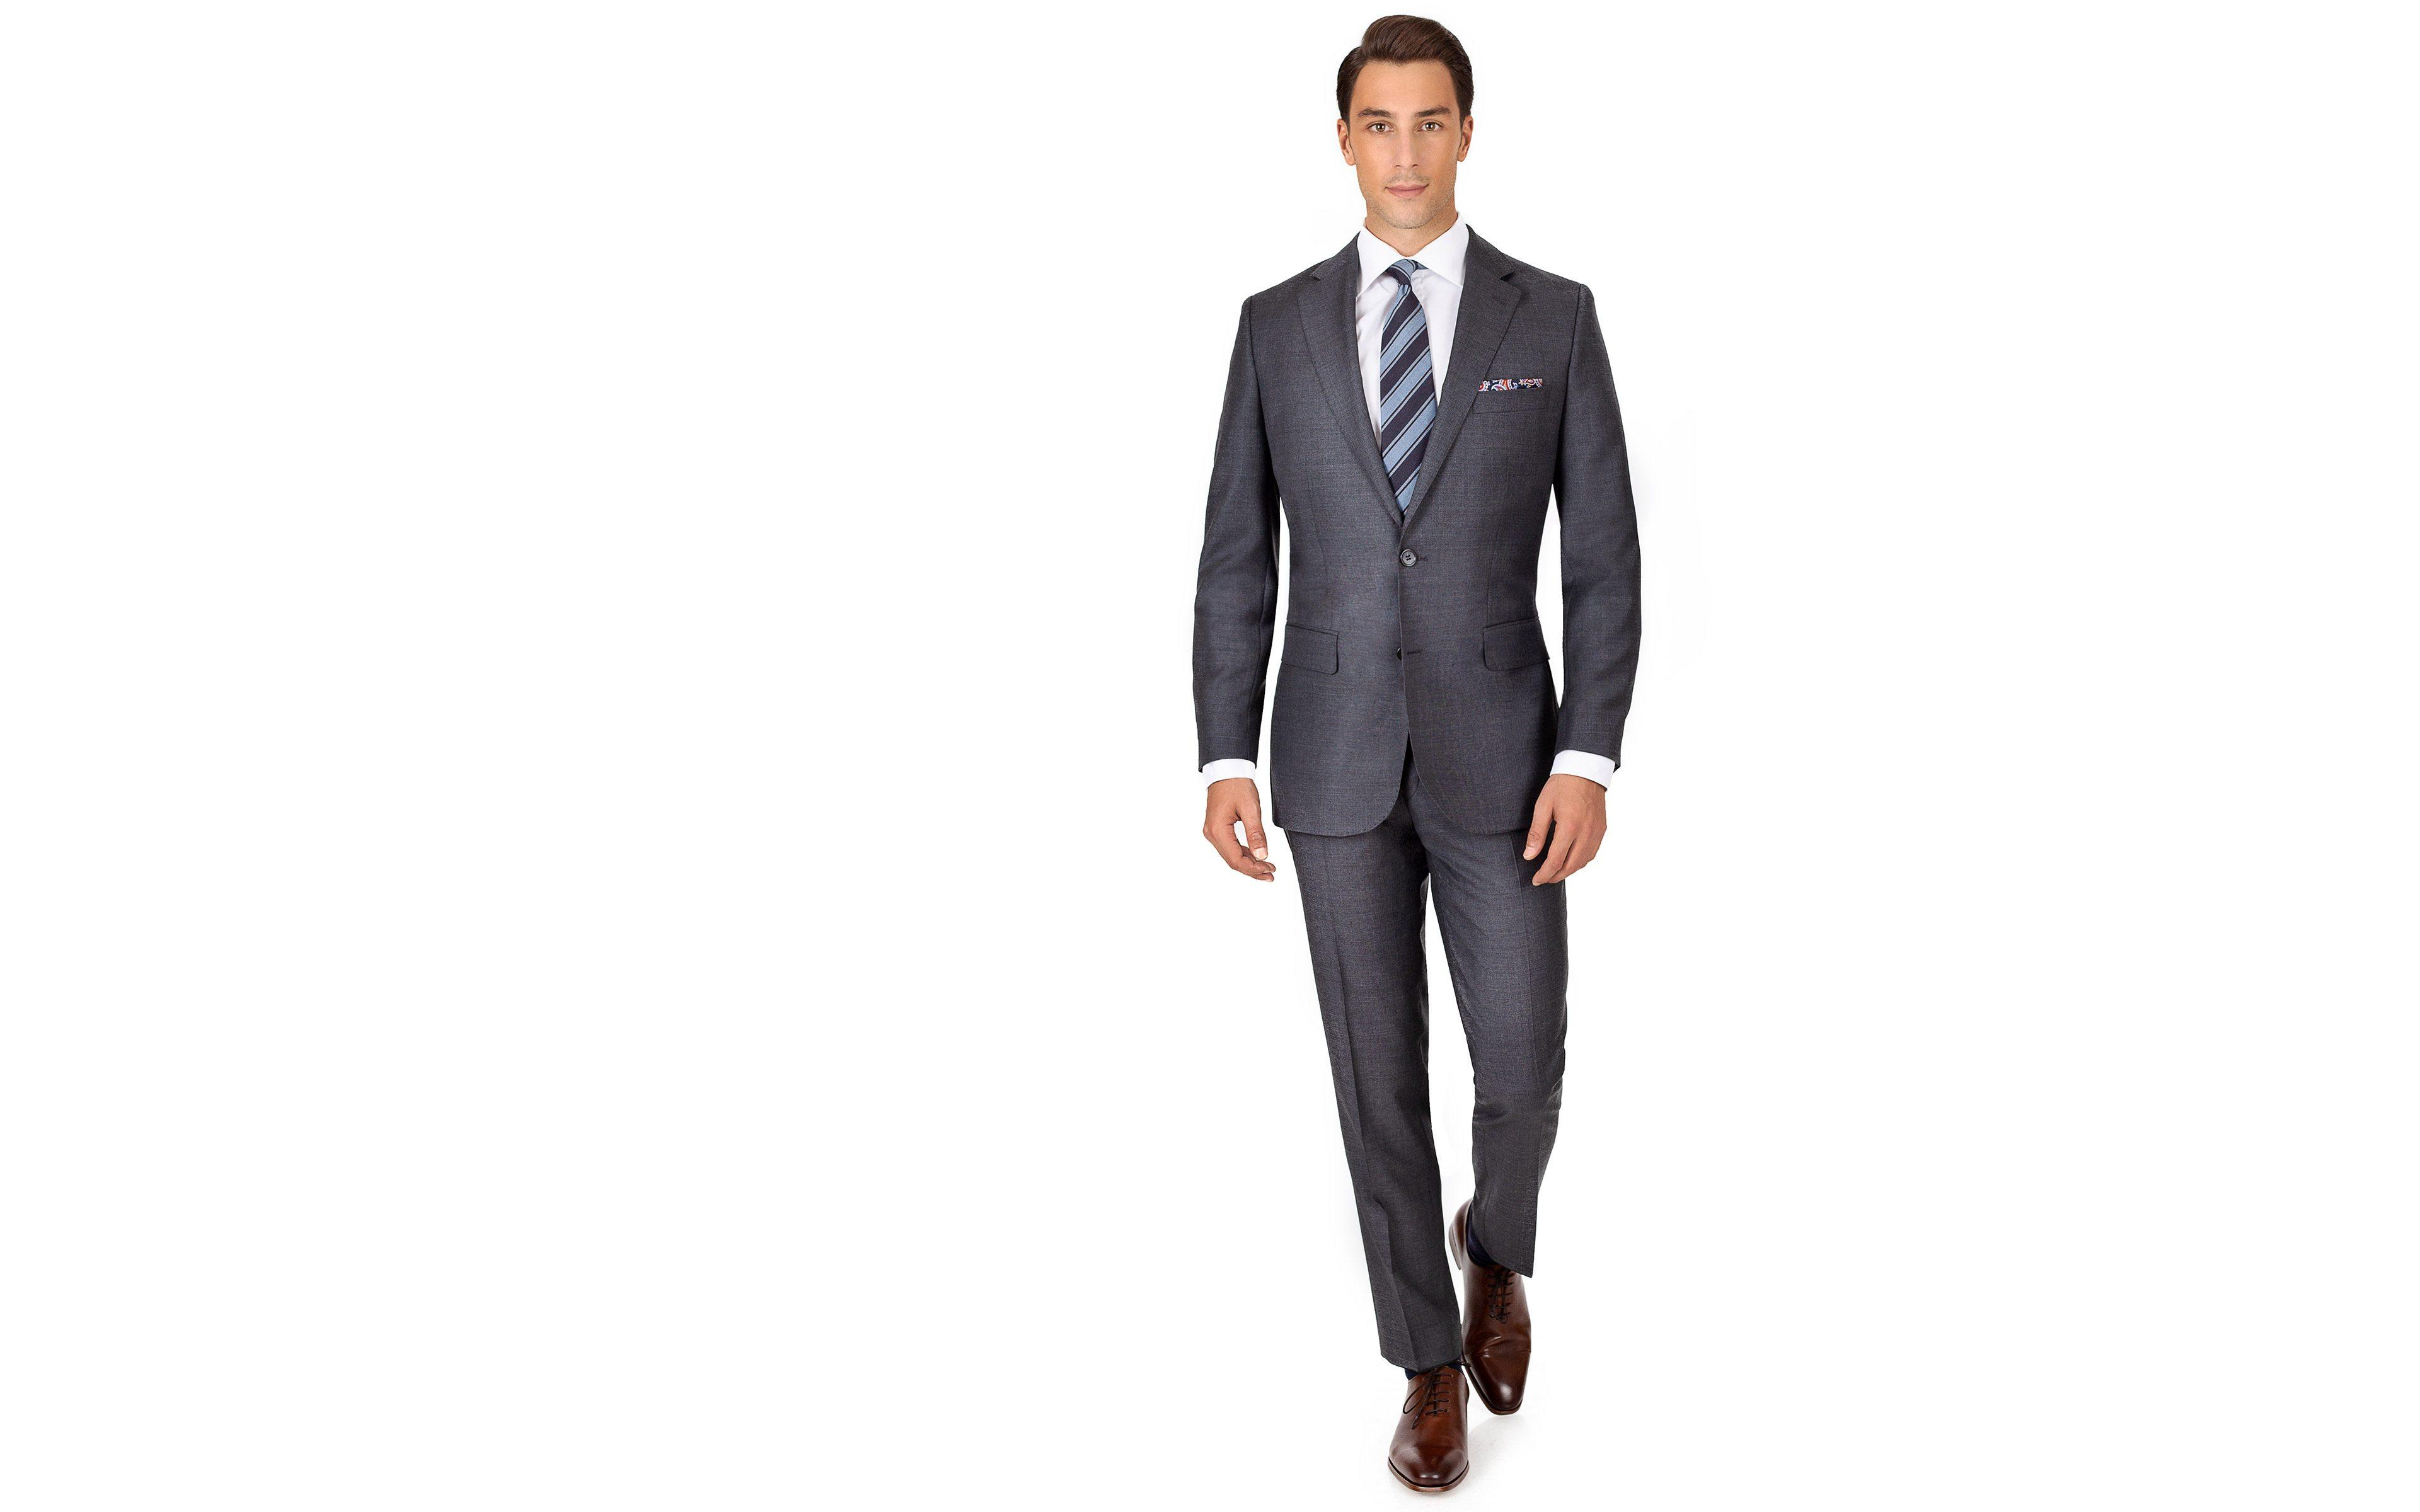 Suit in Dark Grey Pick & Pick Wool